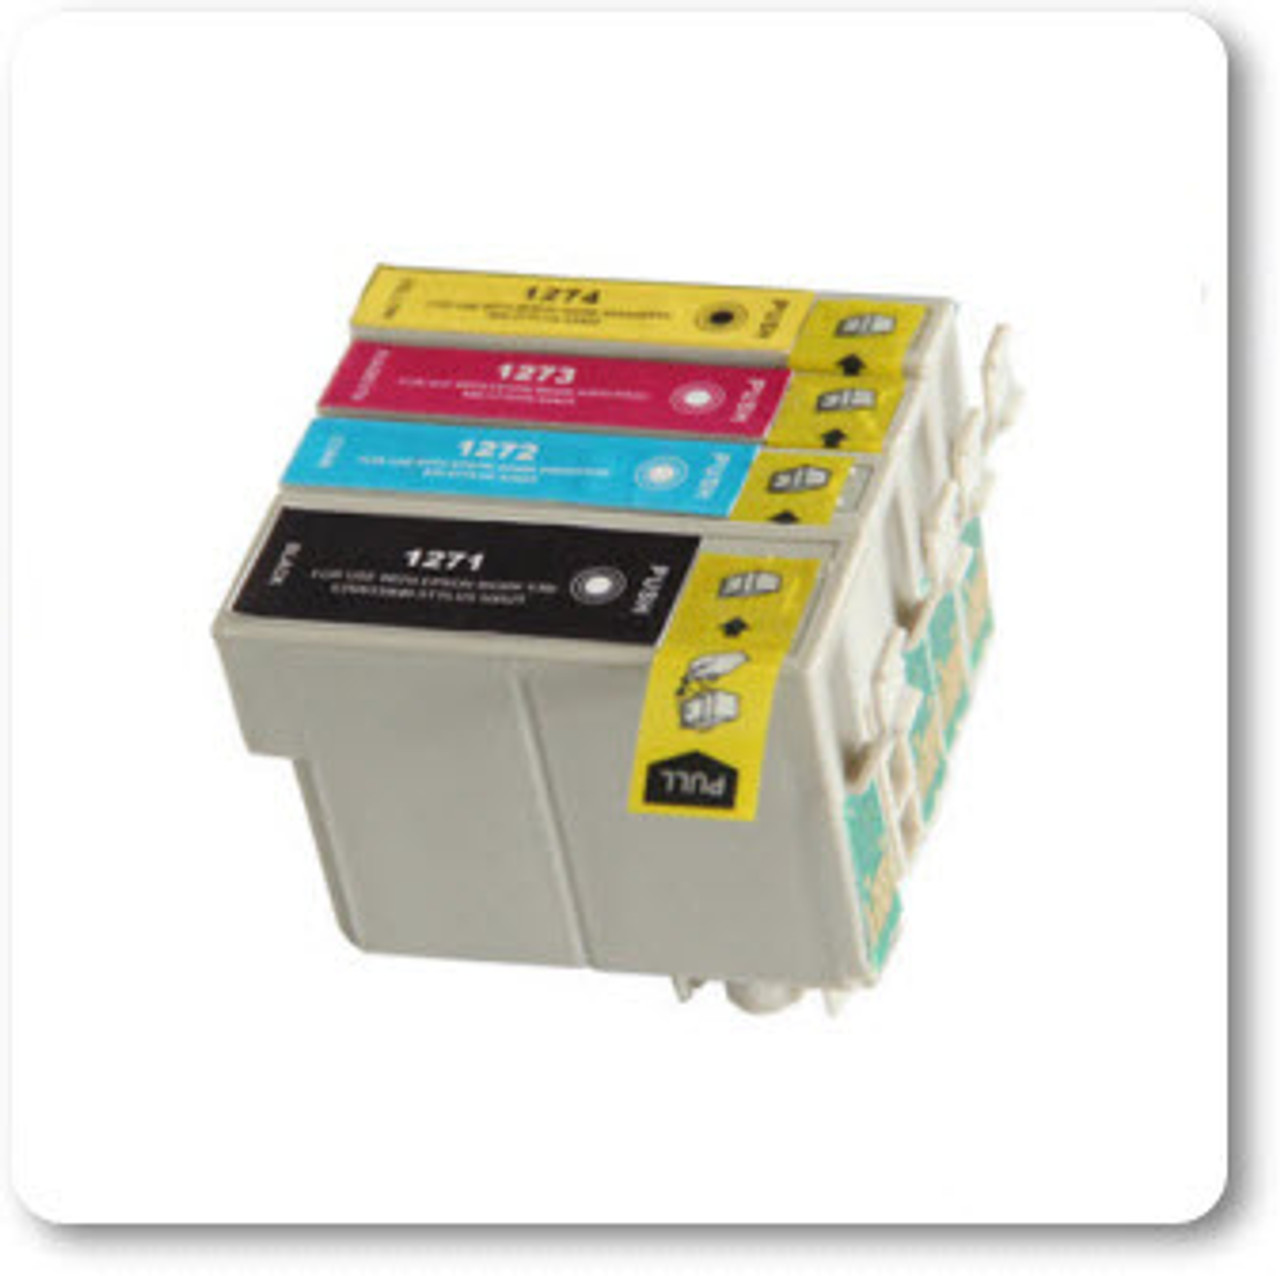 T126, T127 EPSON WorkForce 635 All-in-One Printer Compatible Ink Cartridges